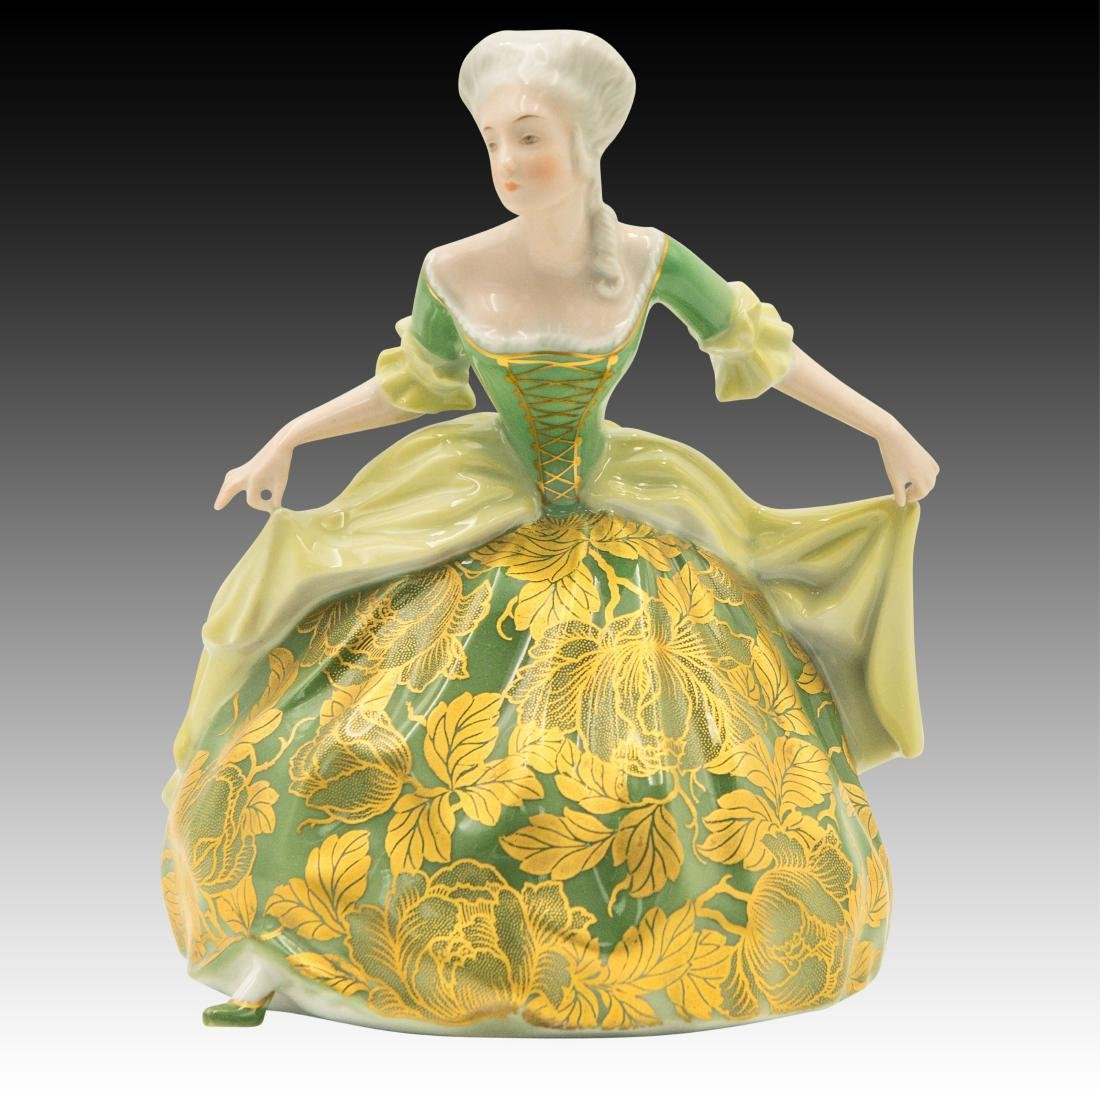 Rosenthal Rococo Dancer in Gold Green Dress